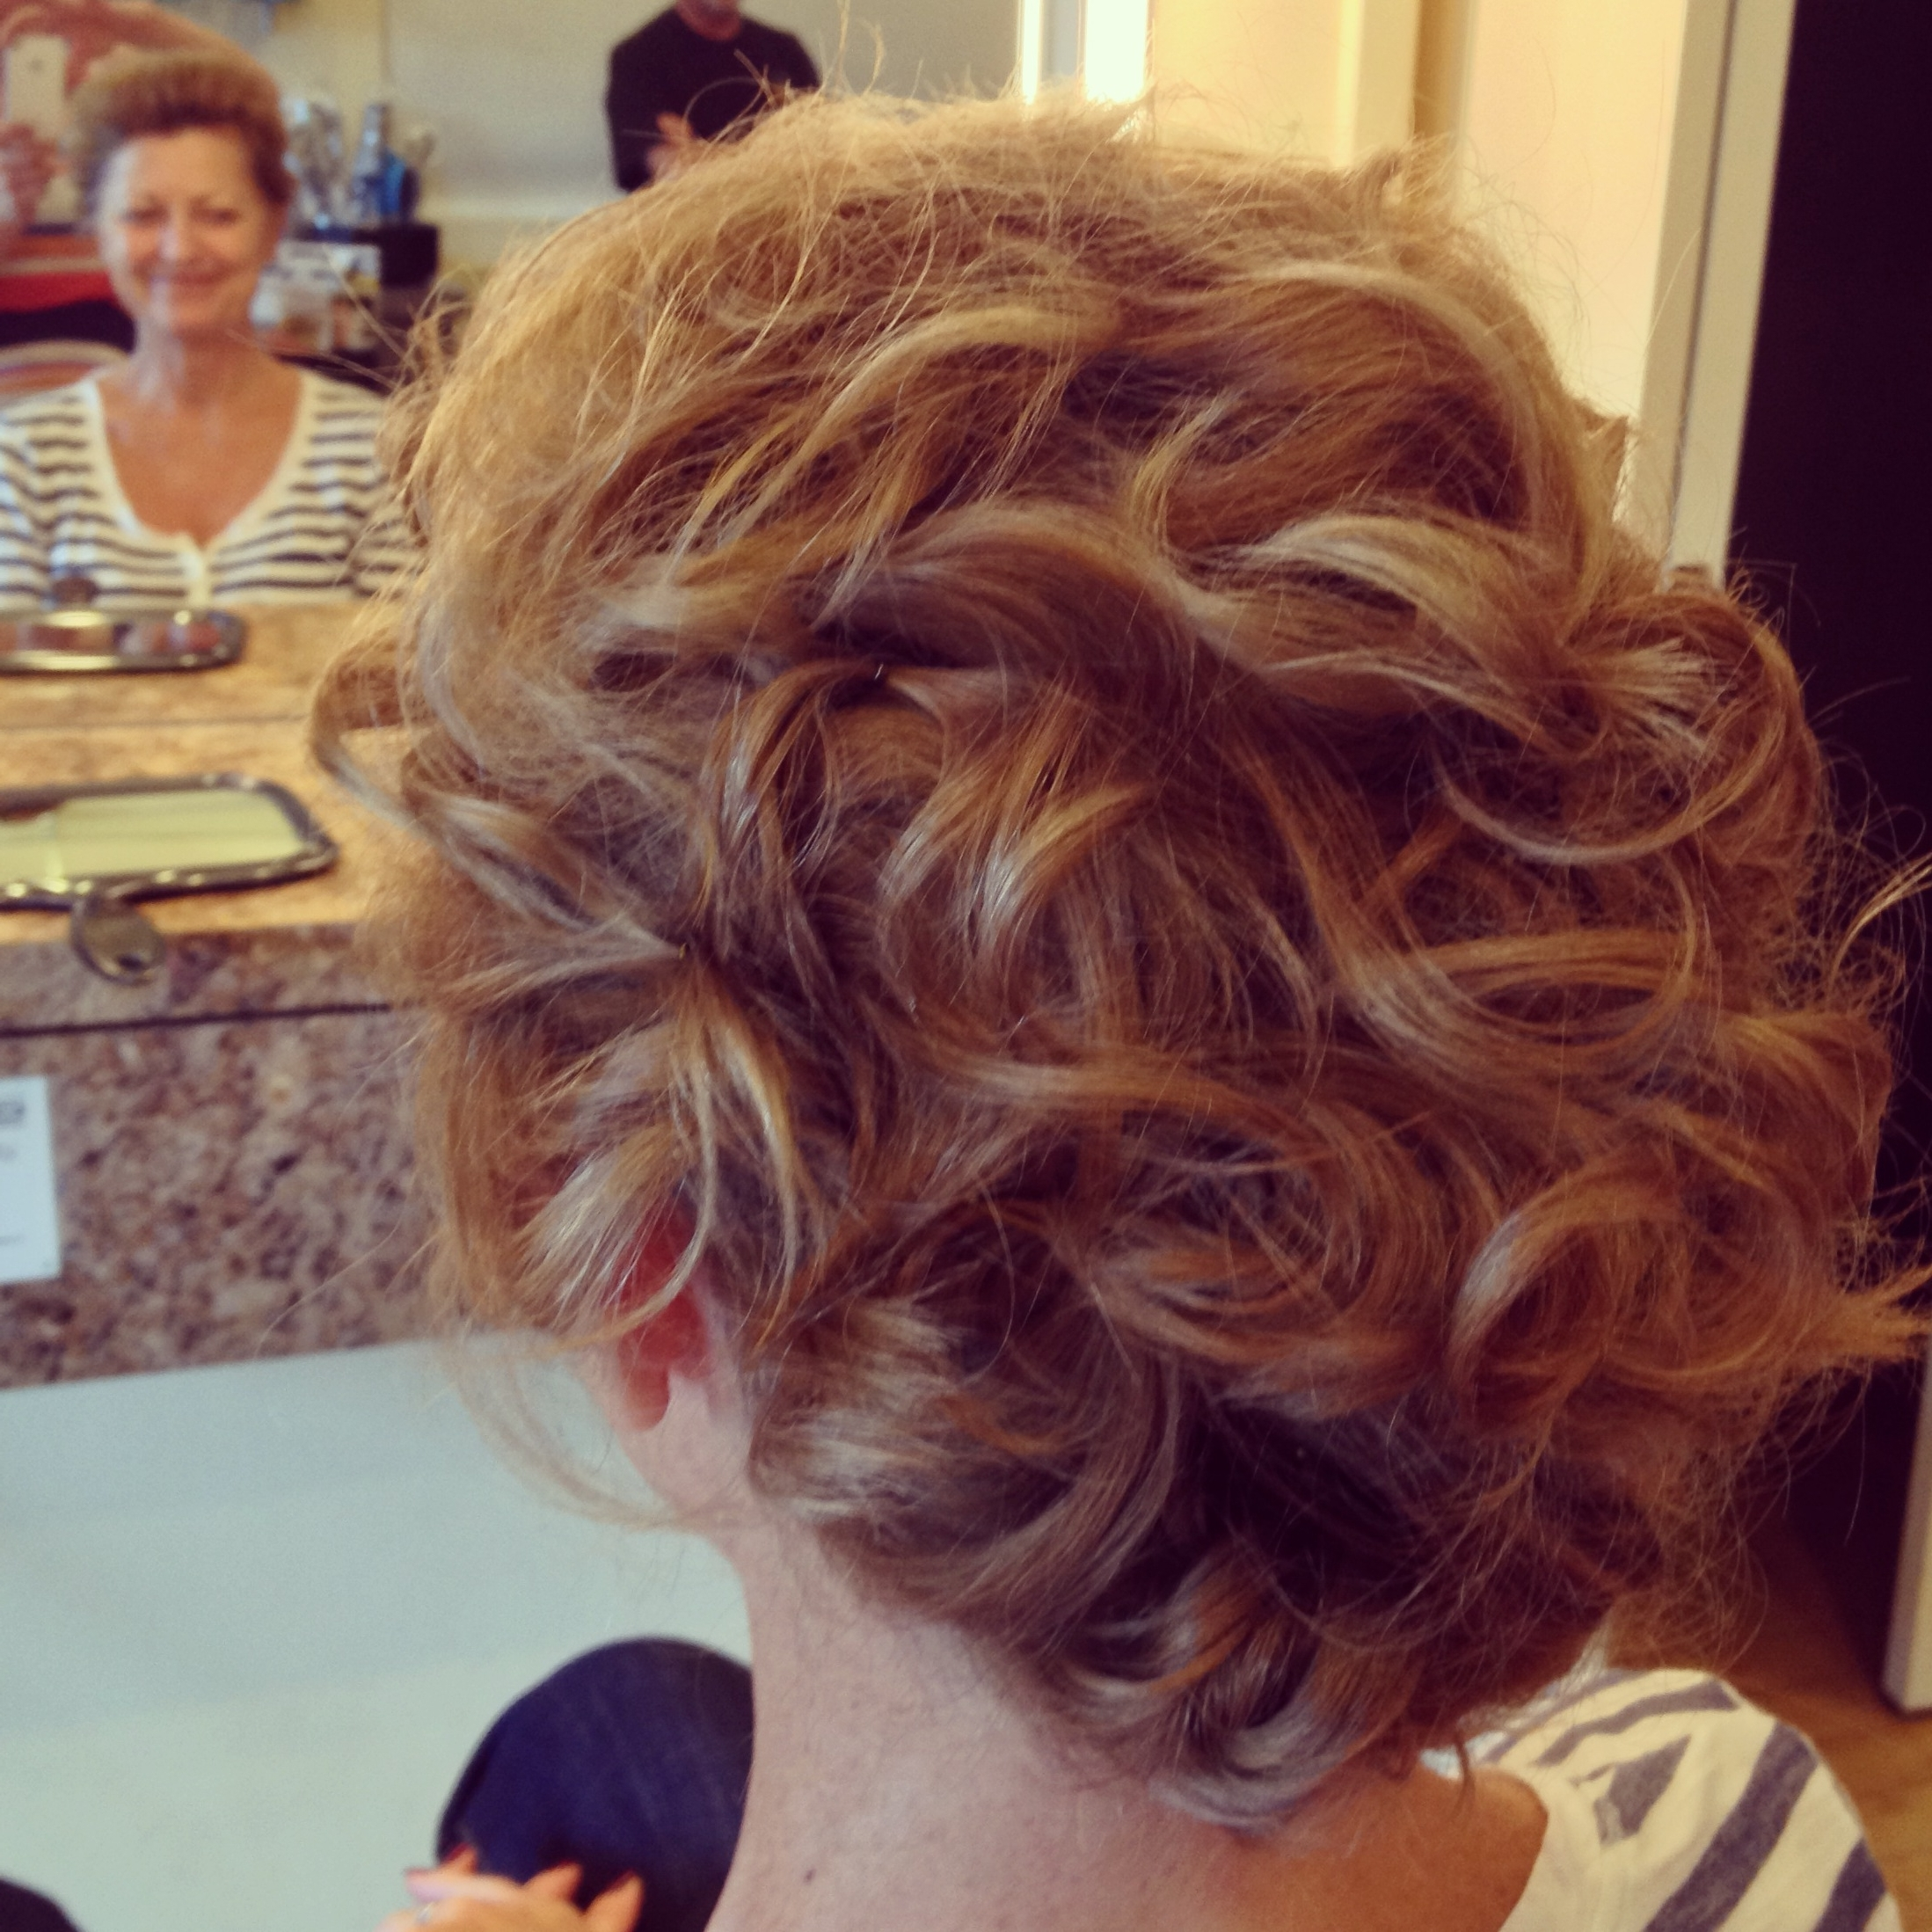 Soft Updo For Short Hair At Haircarrie Mammoth Lakes | Luxury With Soft Updos For Short Hair (View 12 of 15)